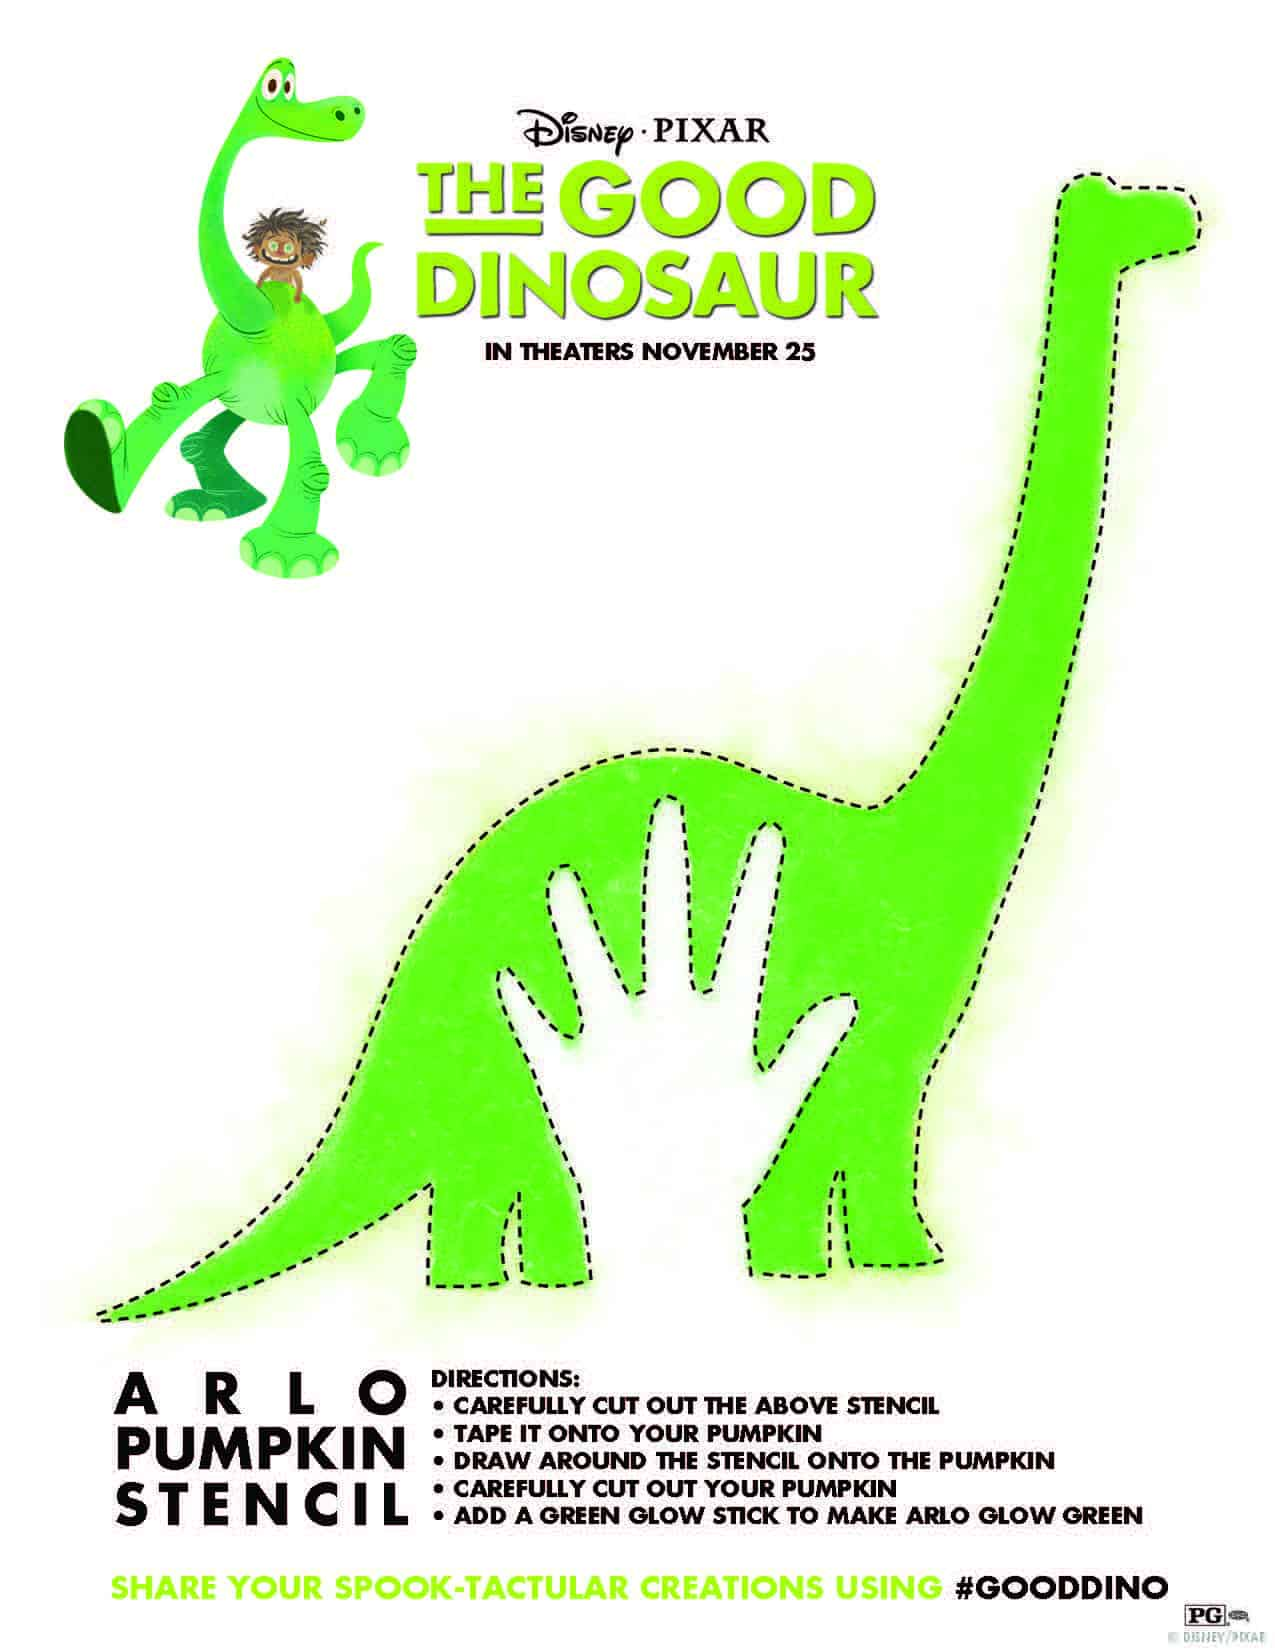 photograph relating to Dinosaur Cutouts Printable called The Great Dinosaur no cost printable, absolutely free pursuits, The Optimistic